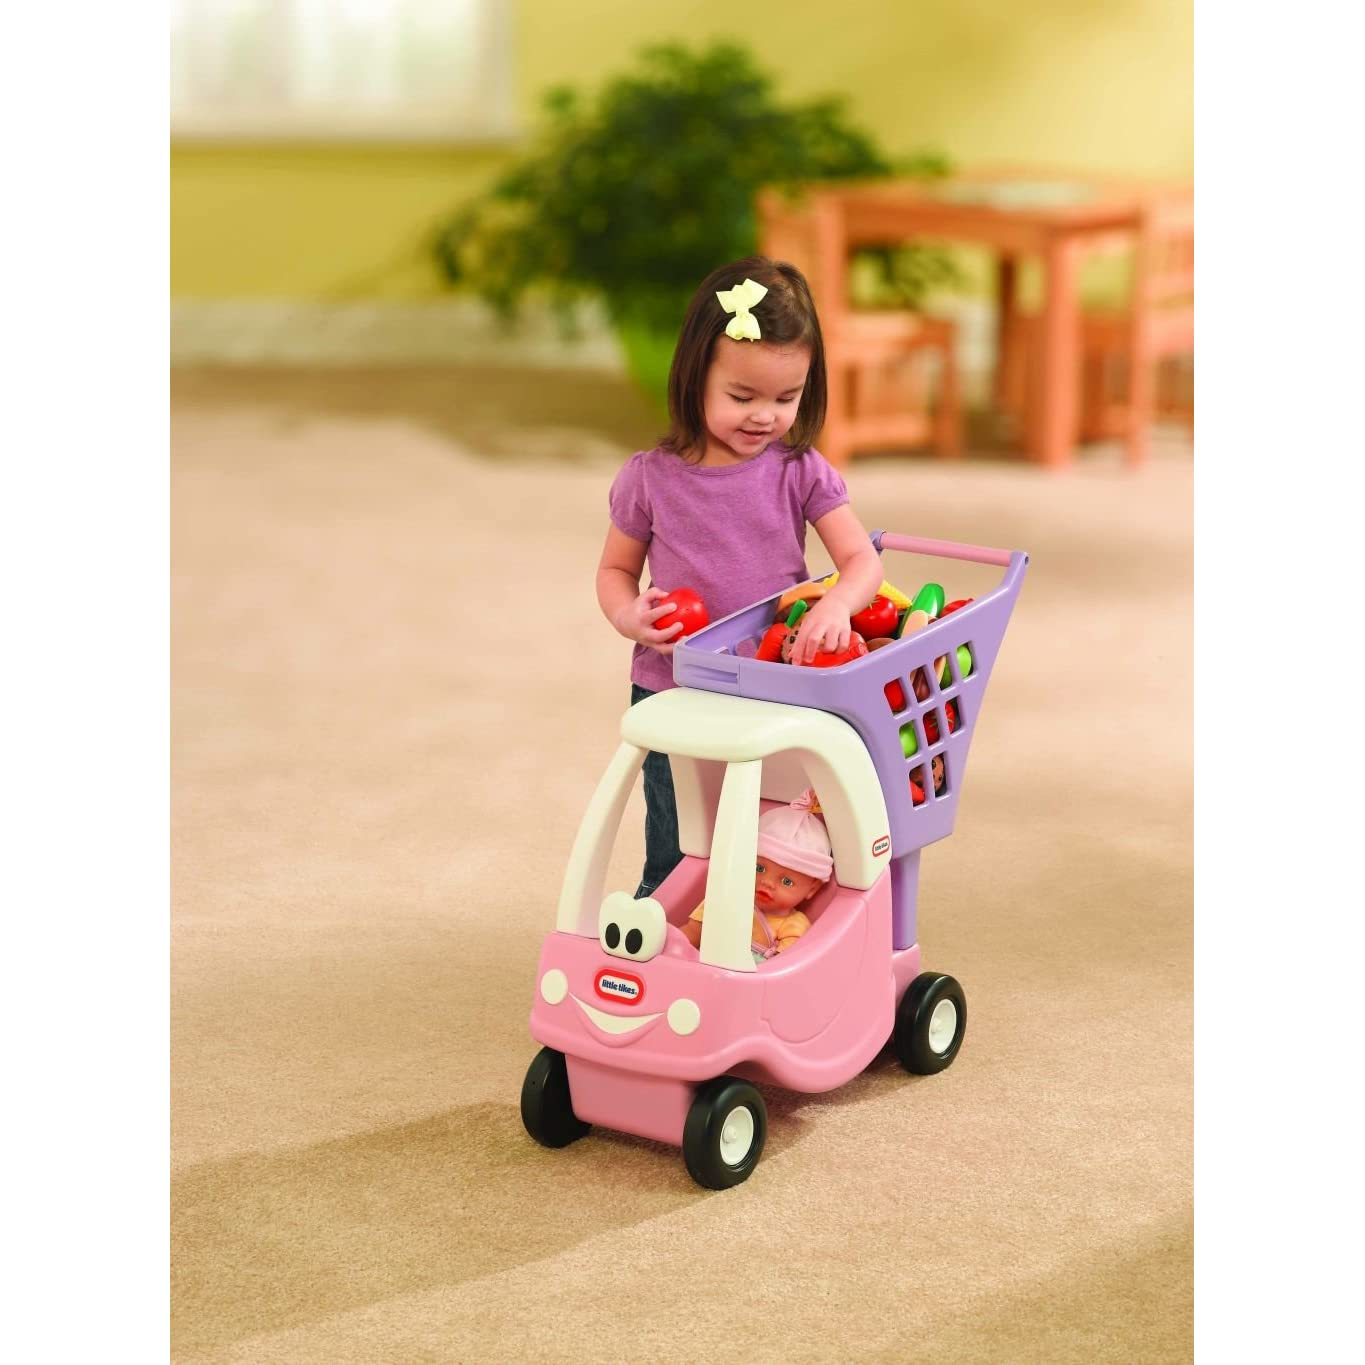 Shop for little tikes store online at Target. Free shipping & returns and save 5% Free Shipping $35+ · 5% Off W/ REDcard · Free Returns · Same Day Store Pick-UpItems: Activity Pads, Building Kits, Collectible Toys, Puppets, Educational Toys.